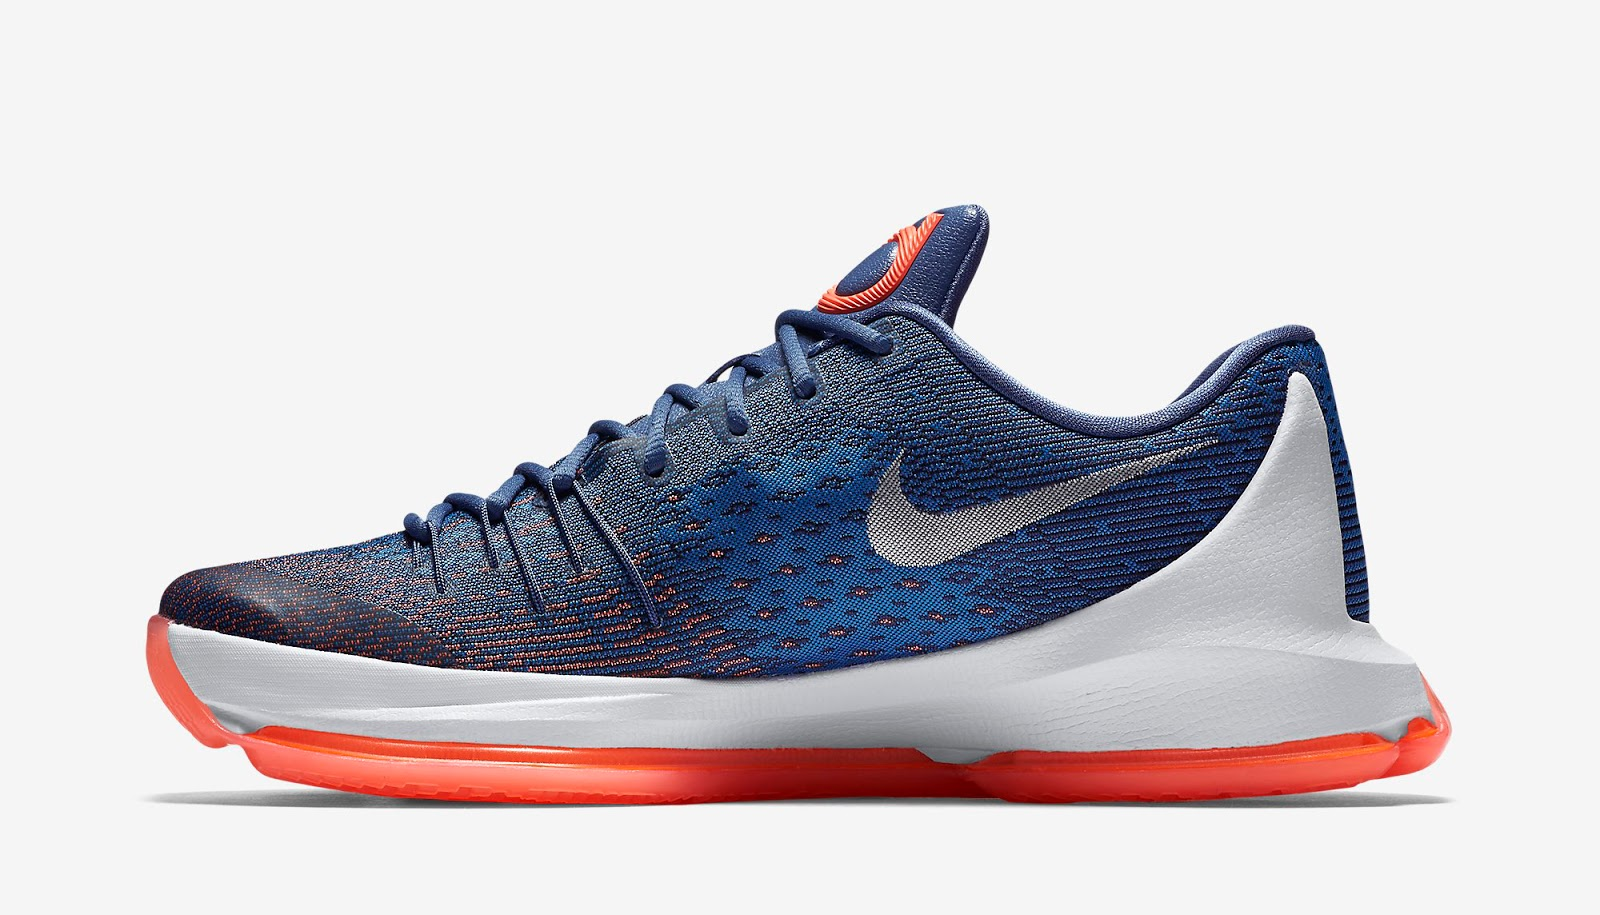 44055449b689 Nike KD VII Royal Blue White Posted .